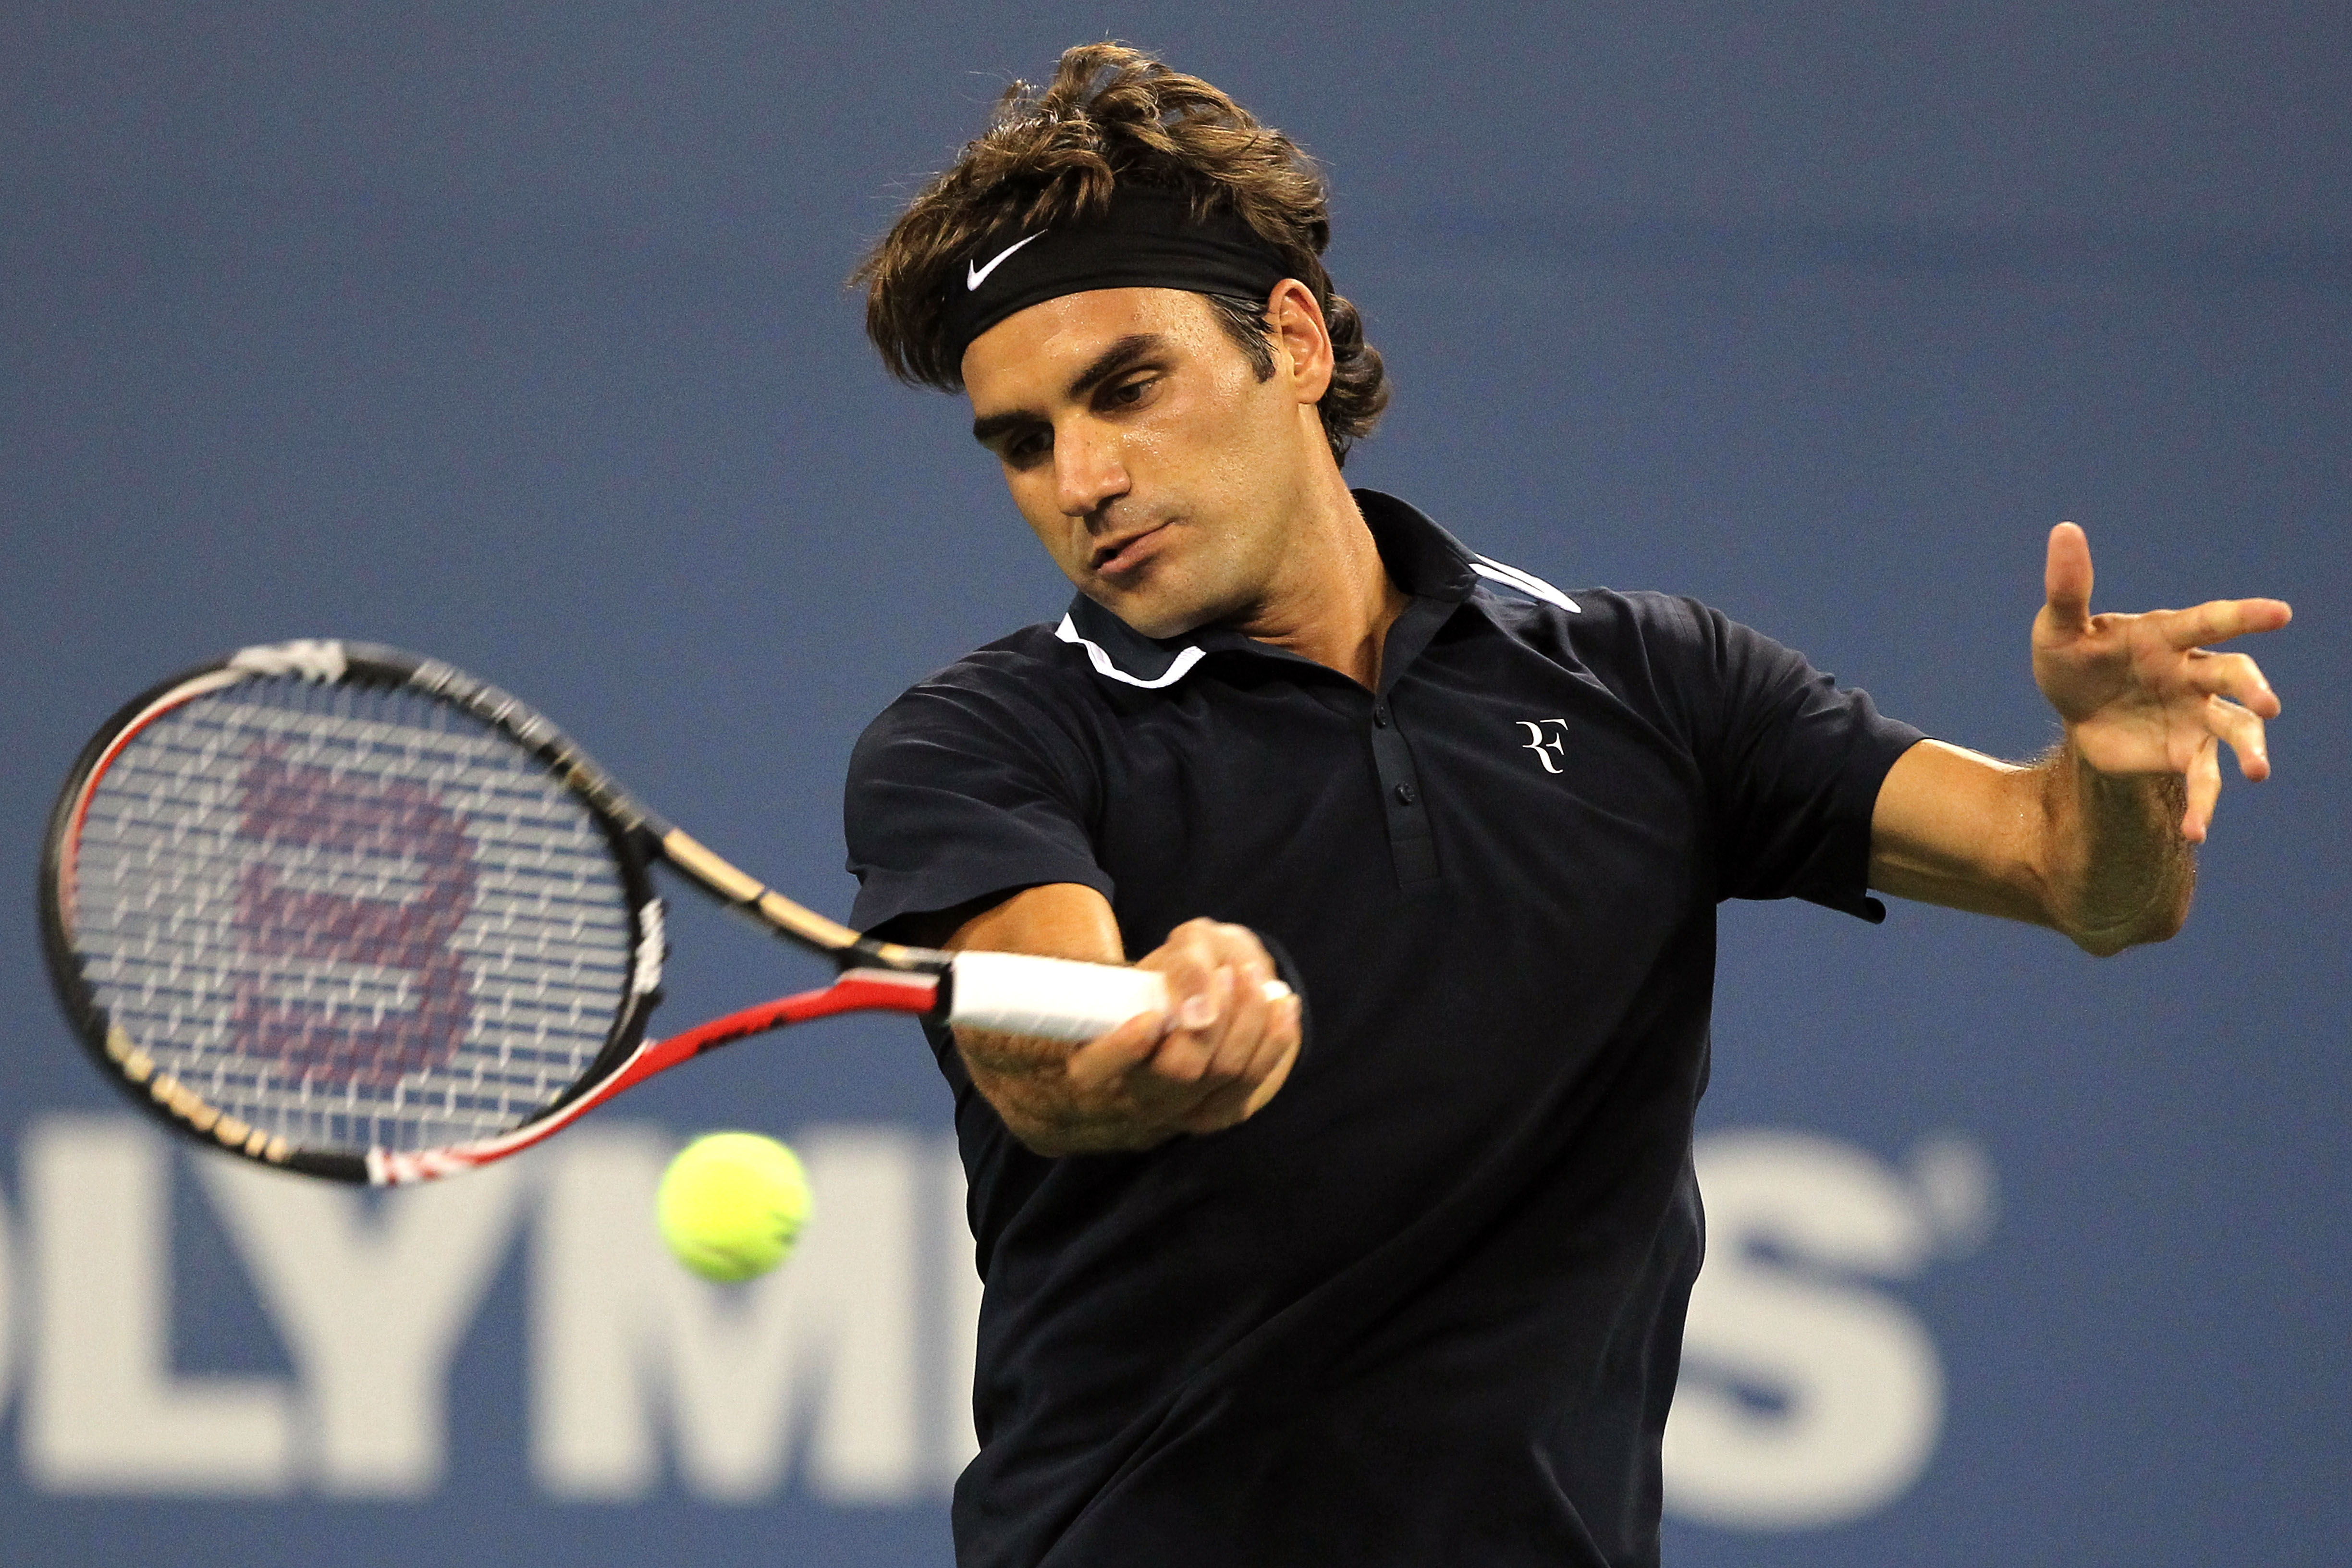 NEW YORK - AUGUST 30:  Roger Federer of Switzerland returns a forehand against Brian Dabul of Argentina during the Men's Singles first round match on day one of the 2010 U.S. Open at the USTA Billie Jean King National Tennis Center on August 30, 2010 in t